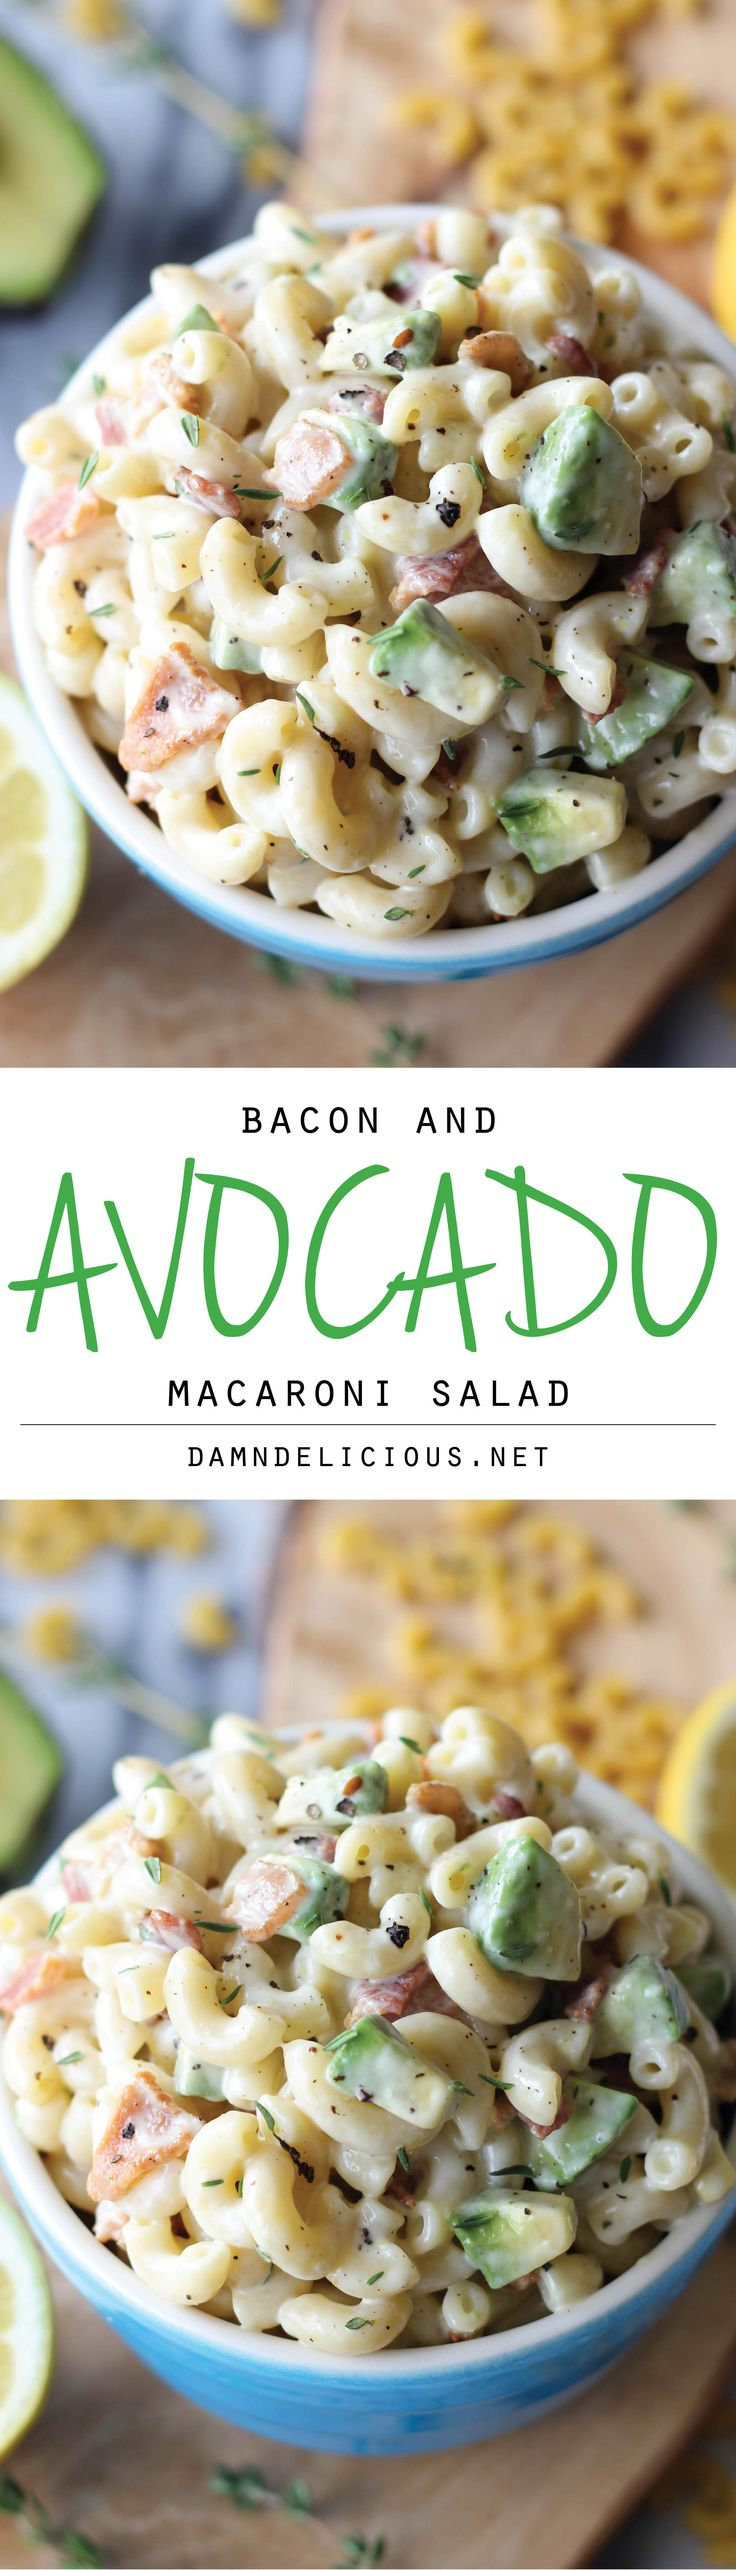 Bacon and Avocado Macaroni Salad - Loaded with fresh avocado and applewood smoked baconl tossed in a lemon-thyme dressing!